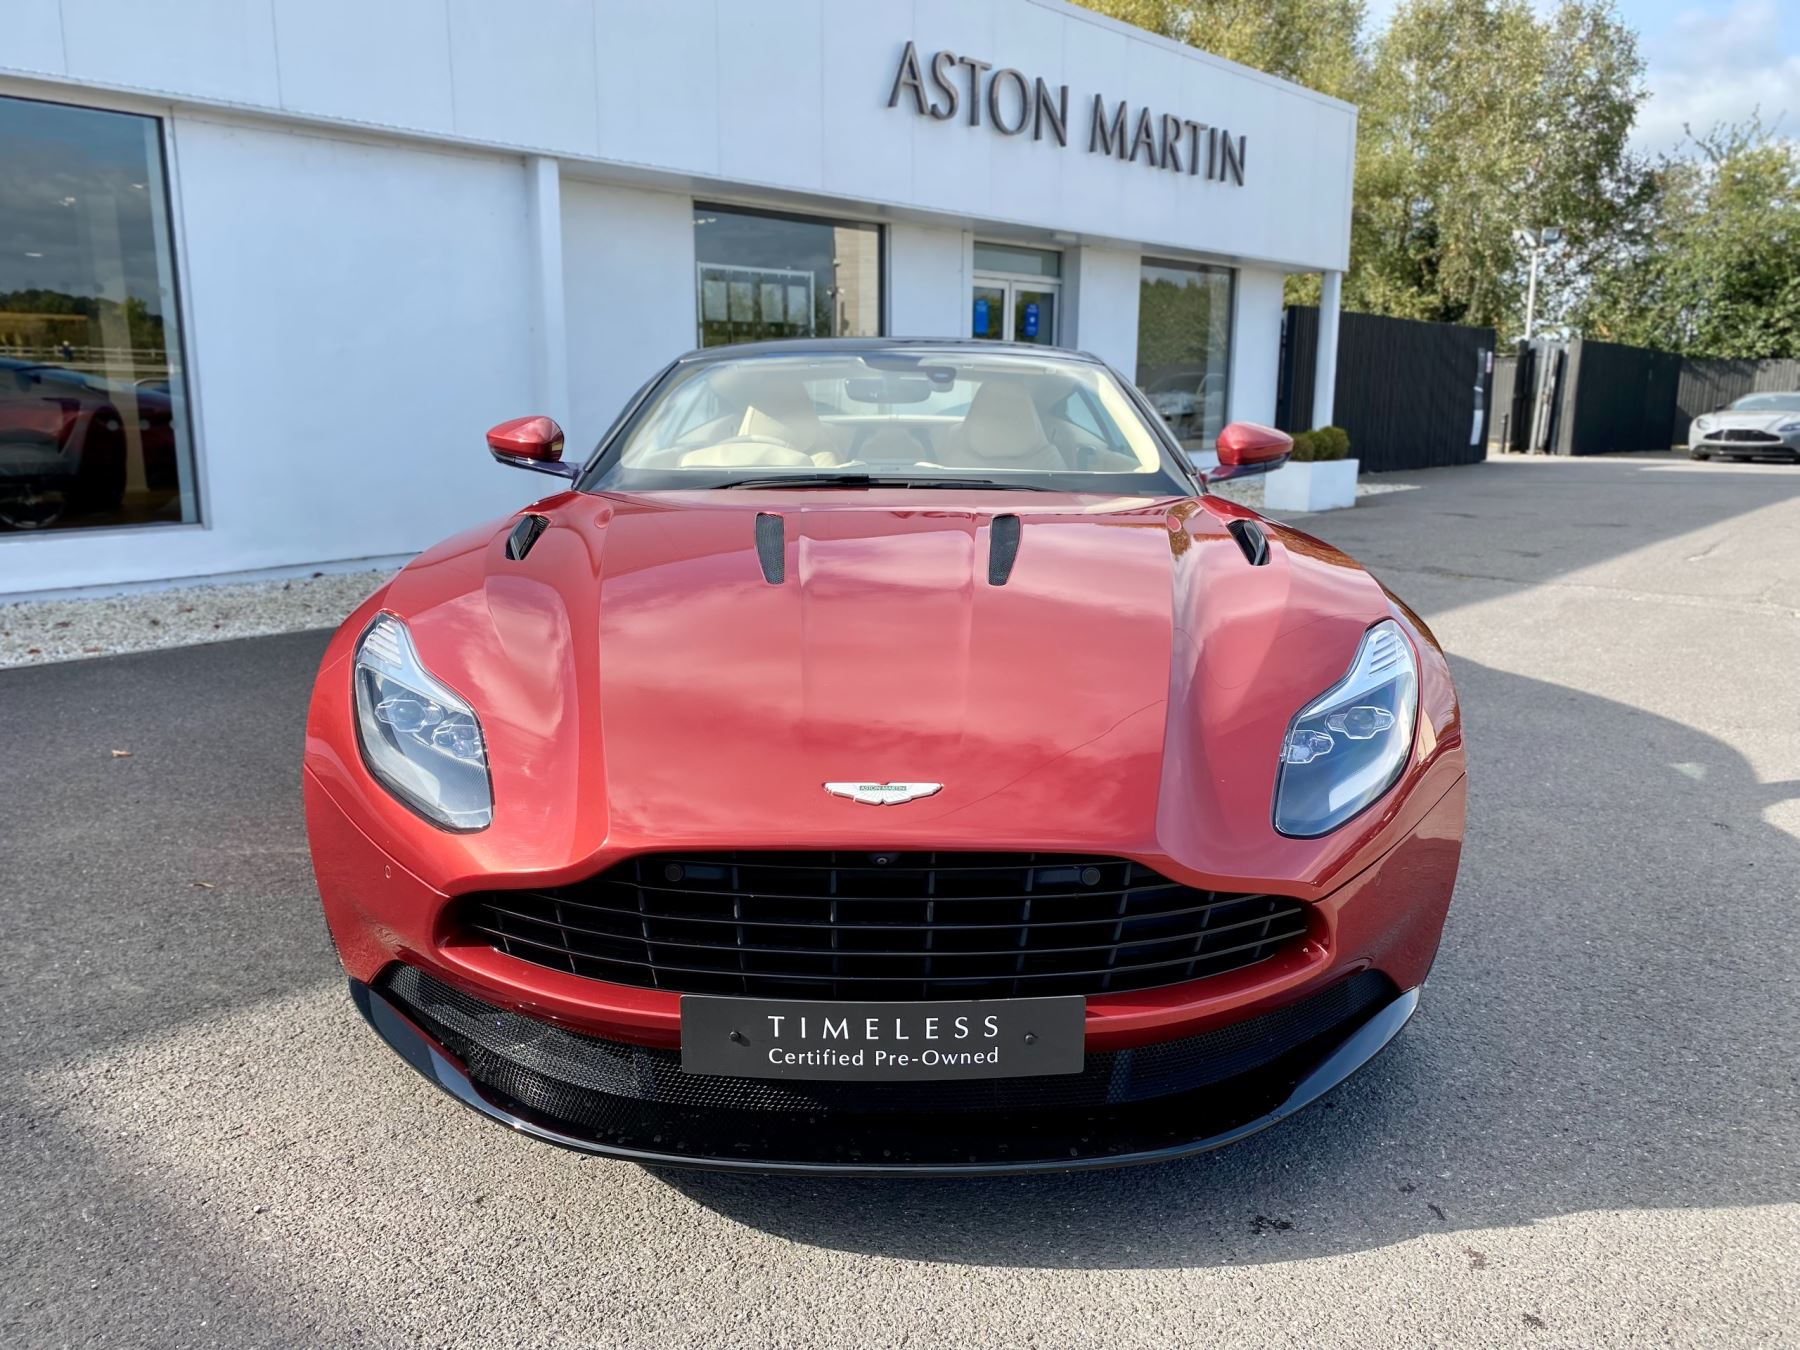 Aston Martin DB11 V12 Launch Edition Coupe. Bang & Olufsen Beosound Audio. Black brake calipers. Ventilated Seats image 2